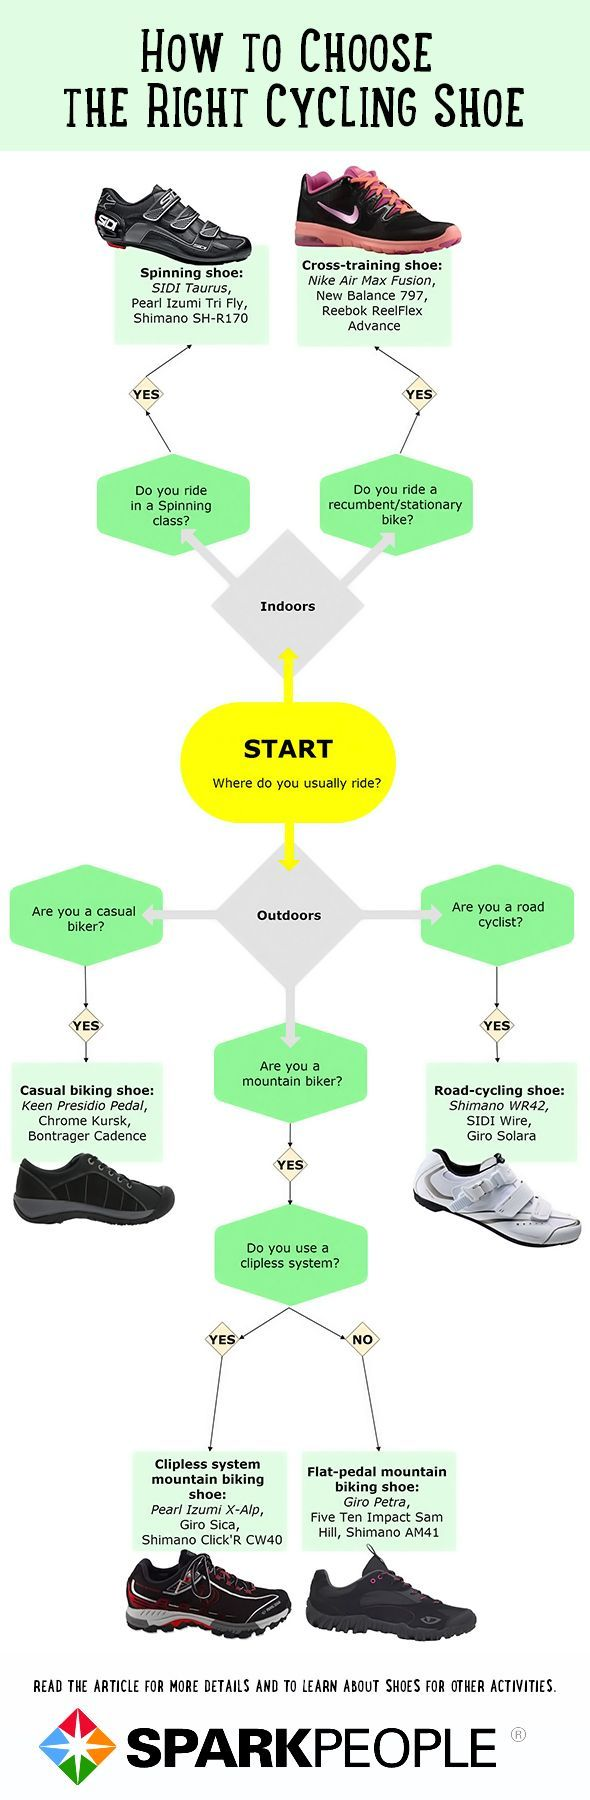 Use our handy charts to discover the perfect shoe for your favorite workouts!